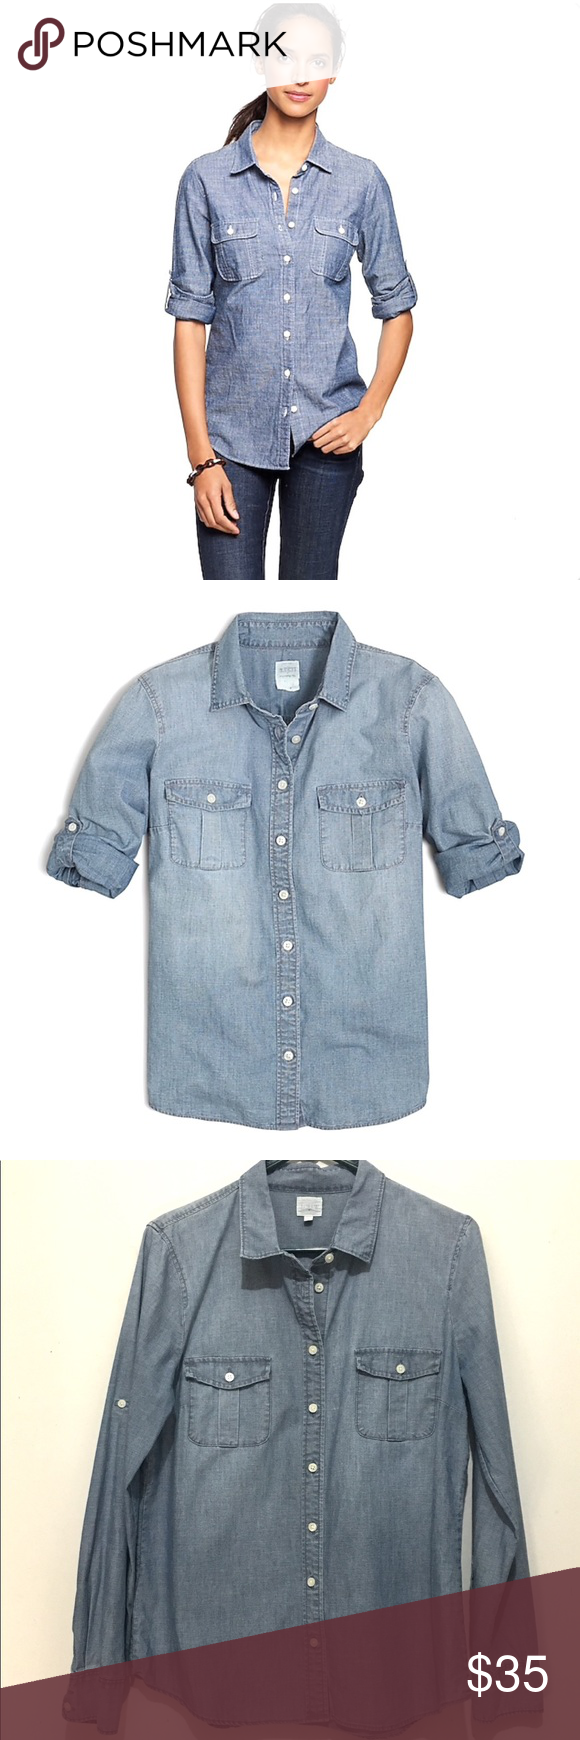 215ce17d J. Crew Factory Perfect Fit Classic Chambray Shirt J. Crew Factory Perfect  Fit Blue Classic Chambray Shirt. Cotton. Long roll-up sleeves with  button-tabs.